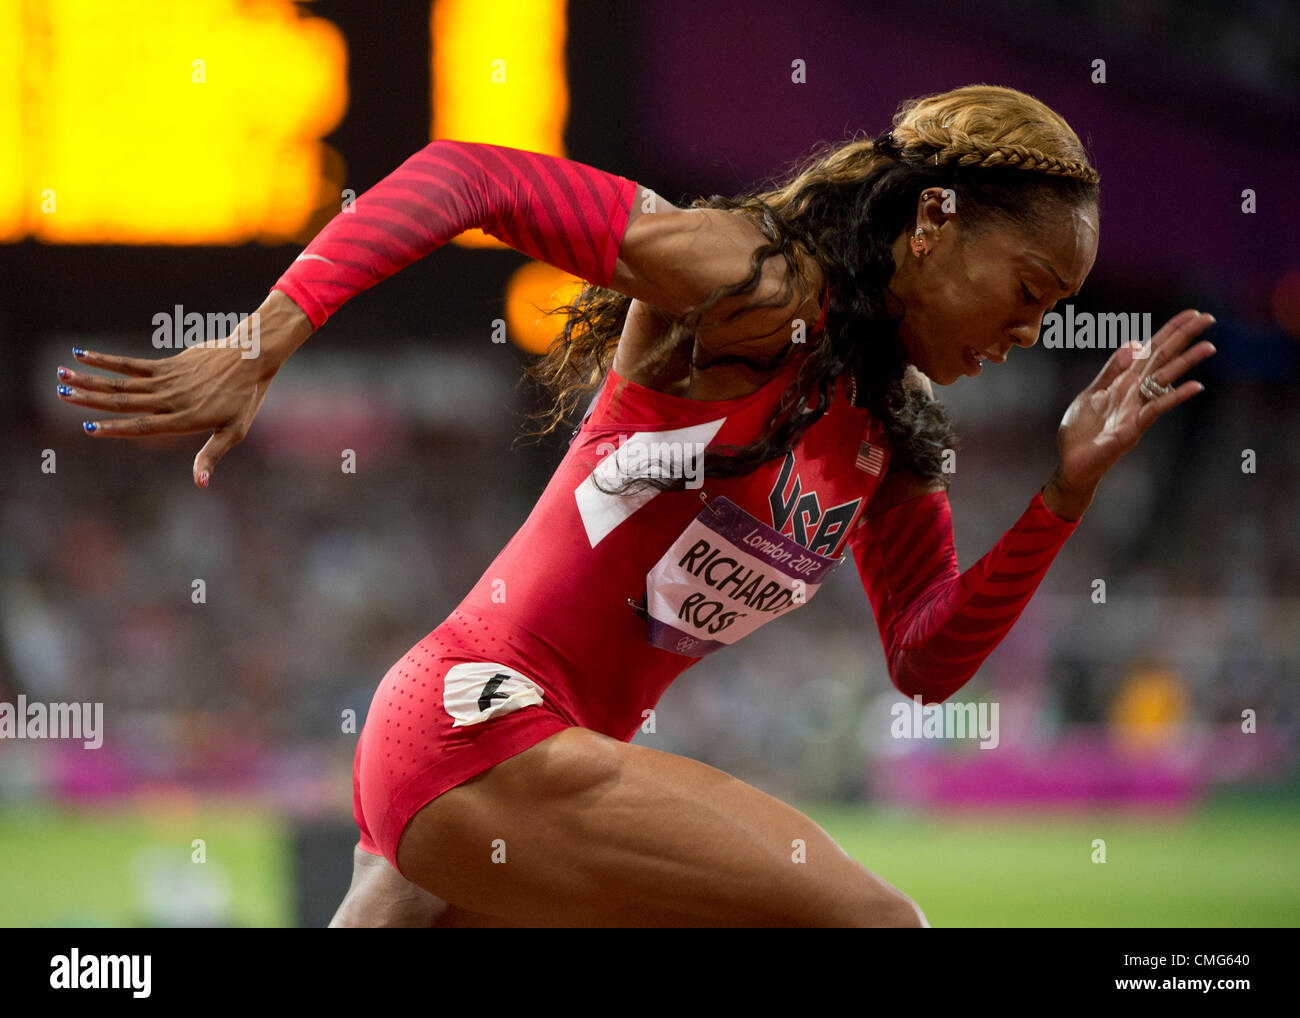 Forum on this topic: Willow Shields, sanya-richards-ross-5-olympic-medals/